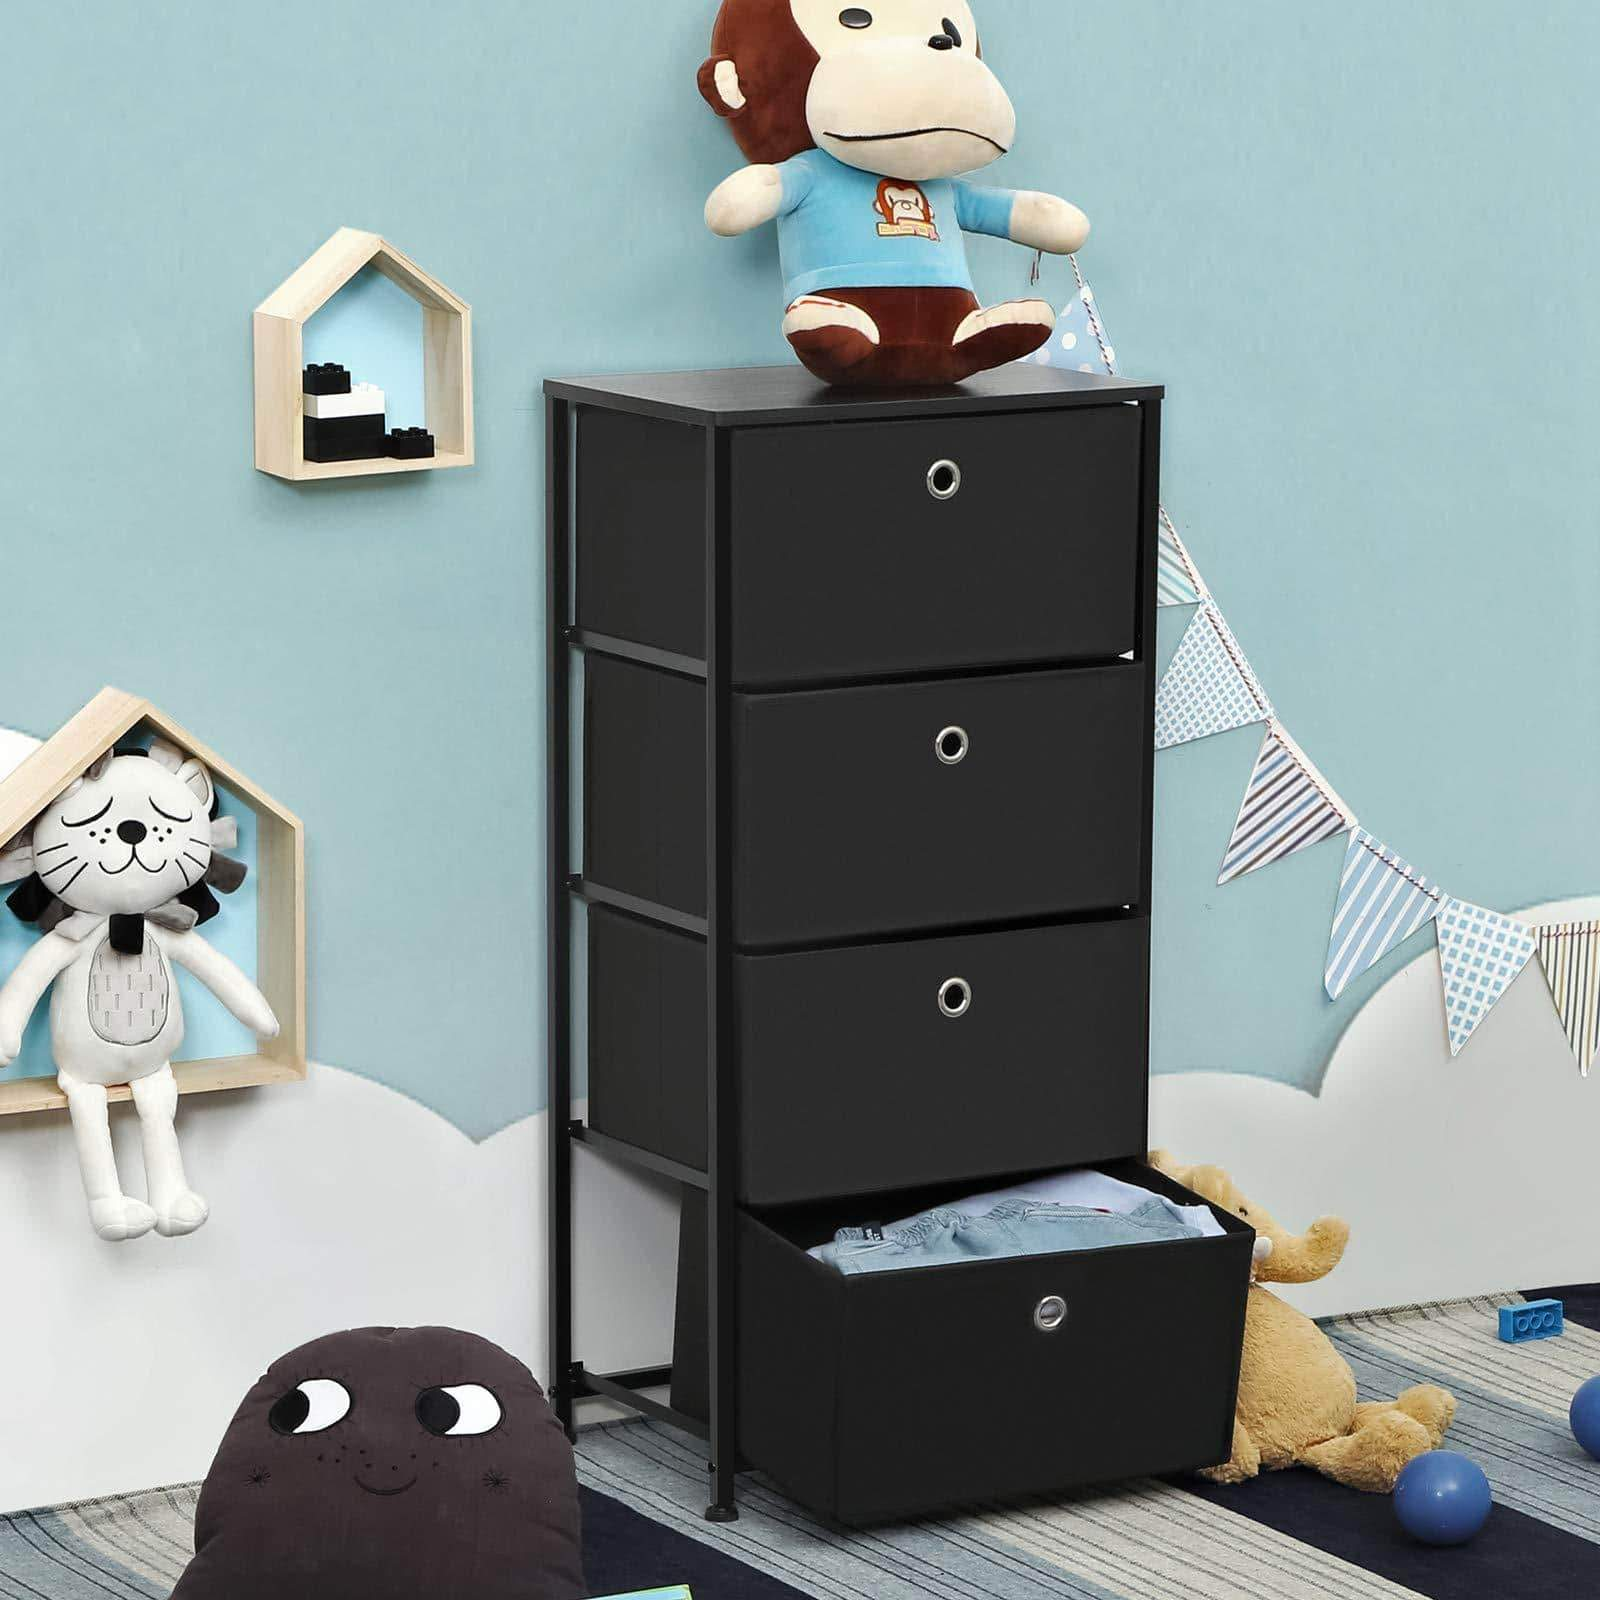 Products songmics 4 tier dresser drawer unit cabinet with 4 easy pull fabric drawers storage organizer with metal frame and wooden tabletop for living room closet hallway black ults04h